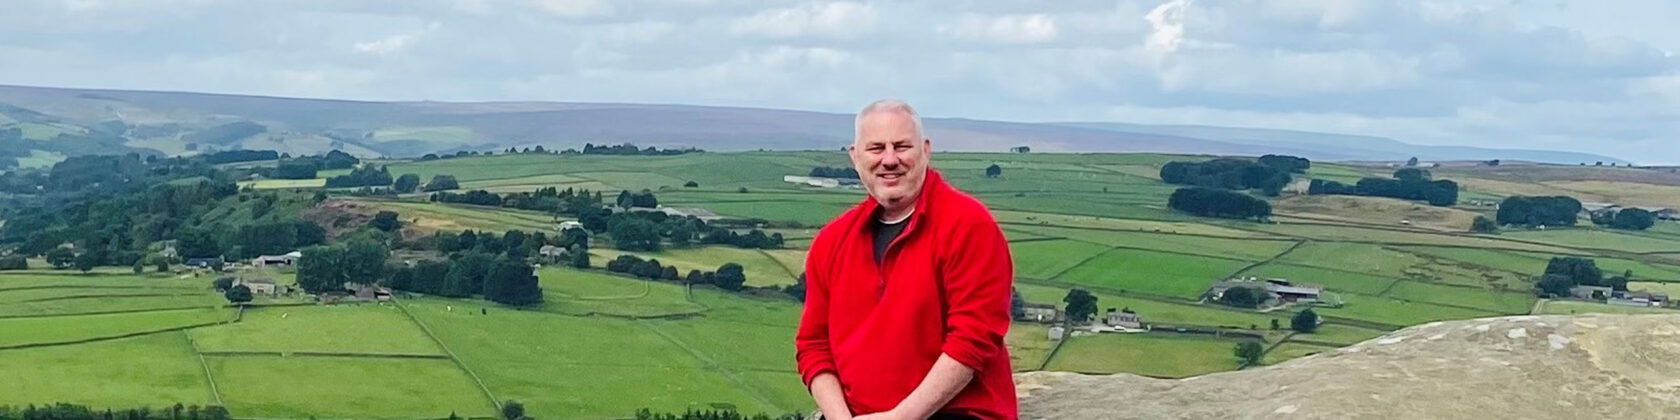 MIke Powell standing against a rural landscape